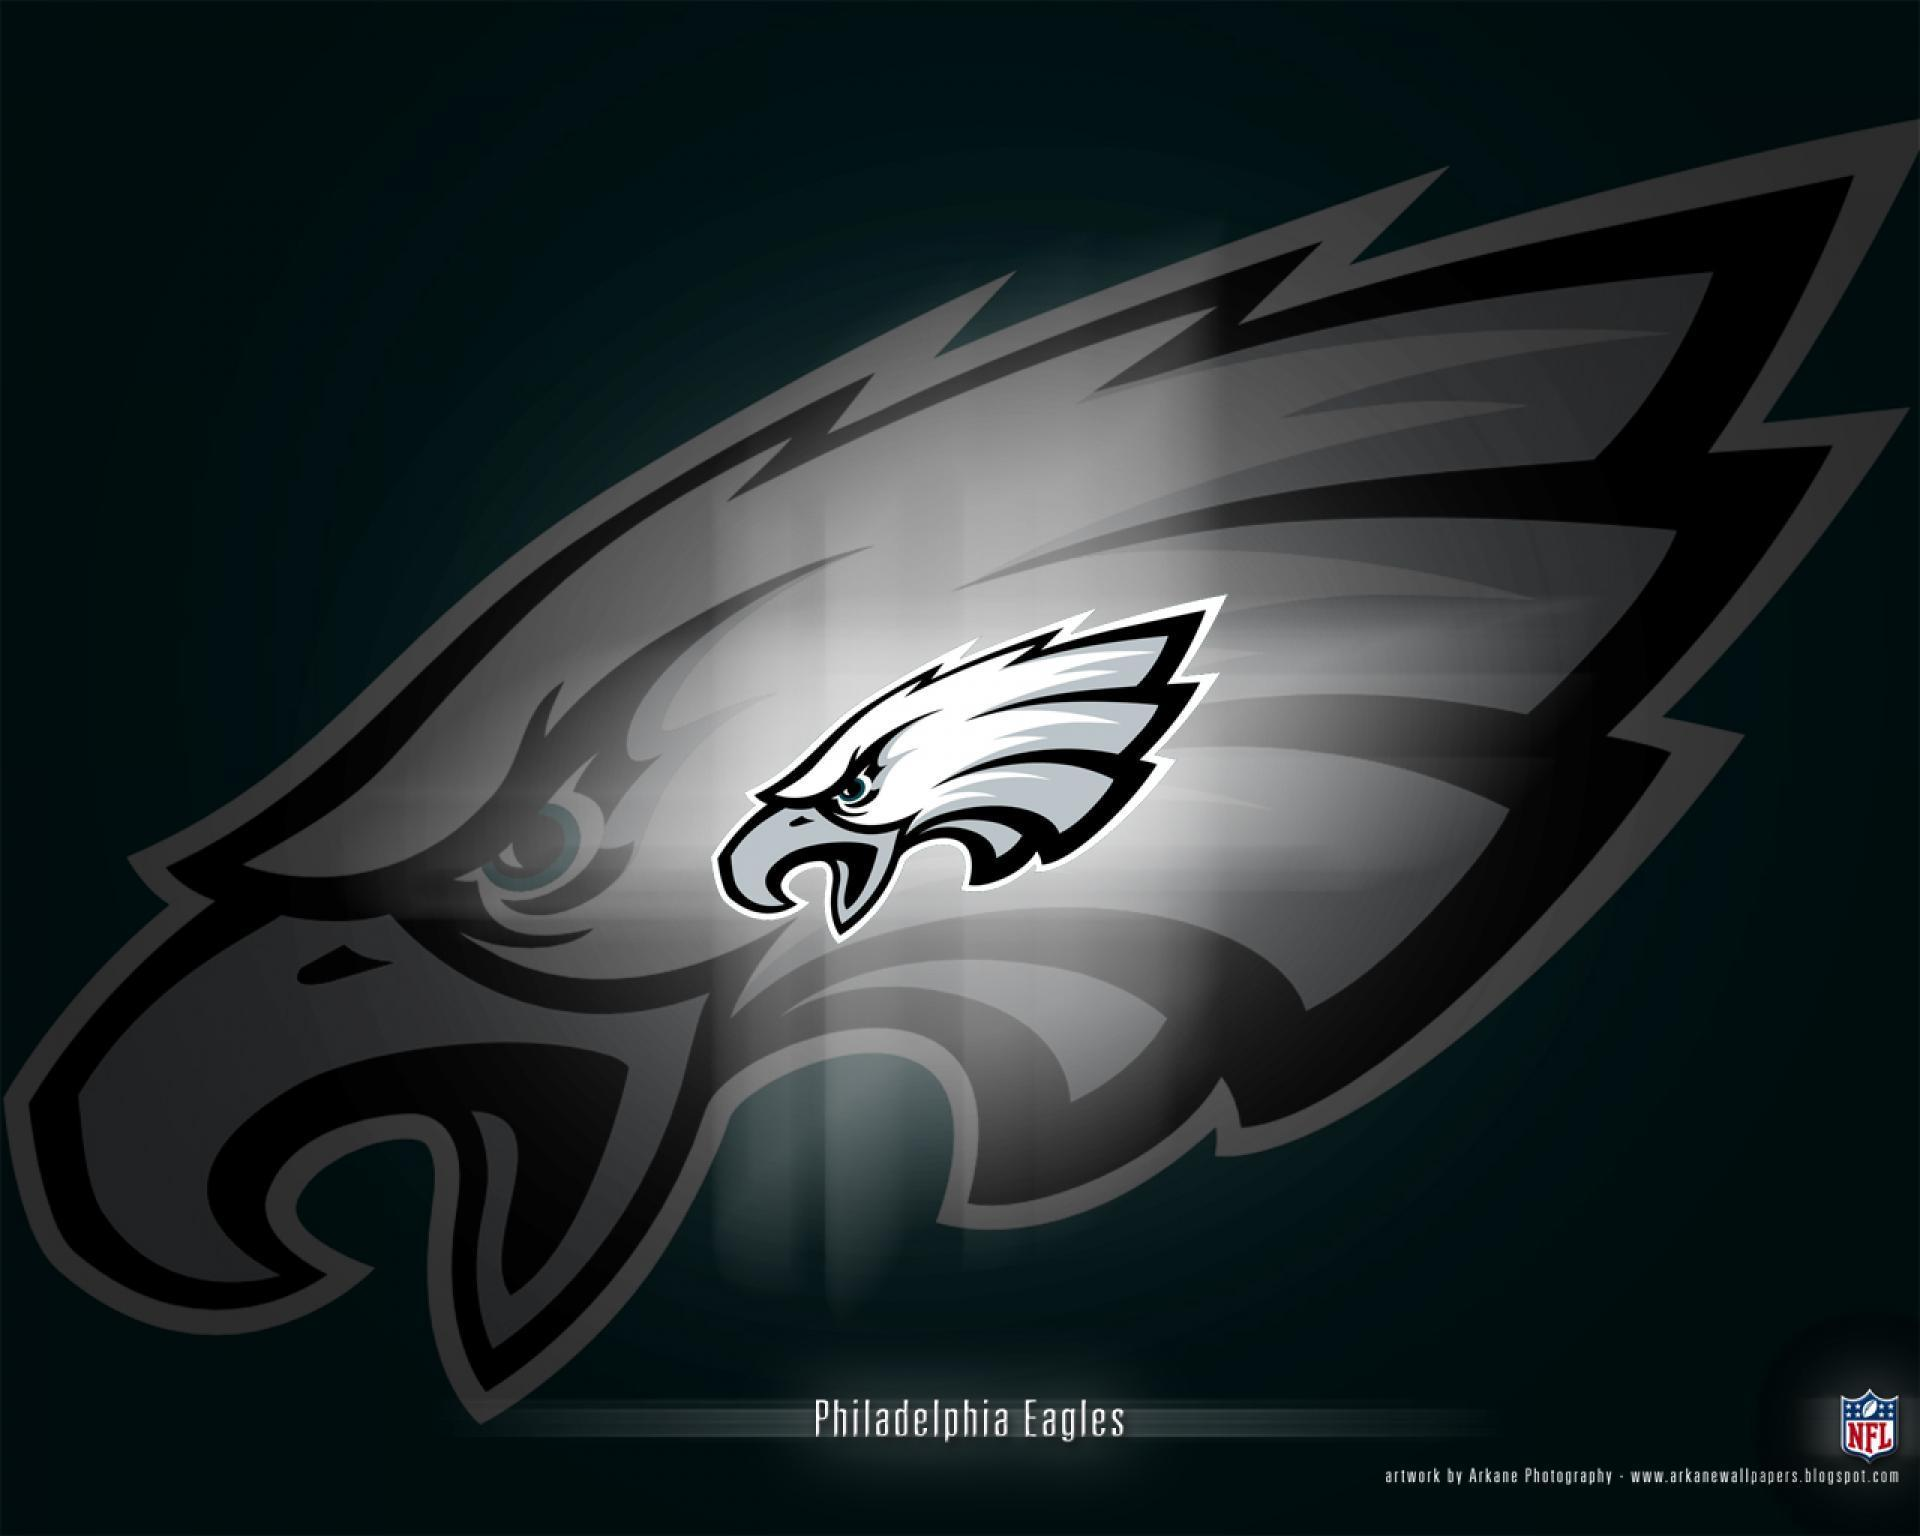 Philadelphia Eagles Wallpaper 6 - 2014 HD Wallpapers